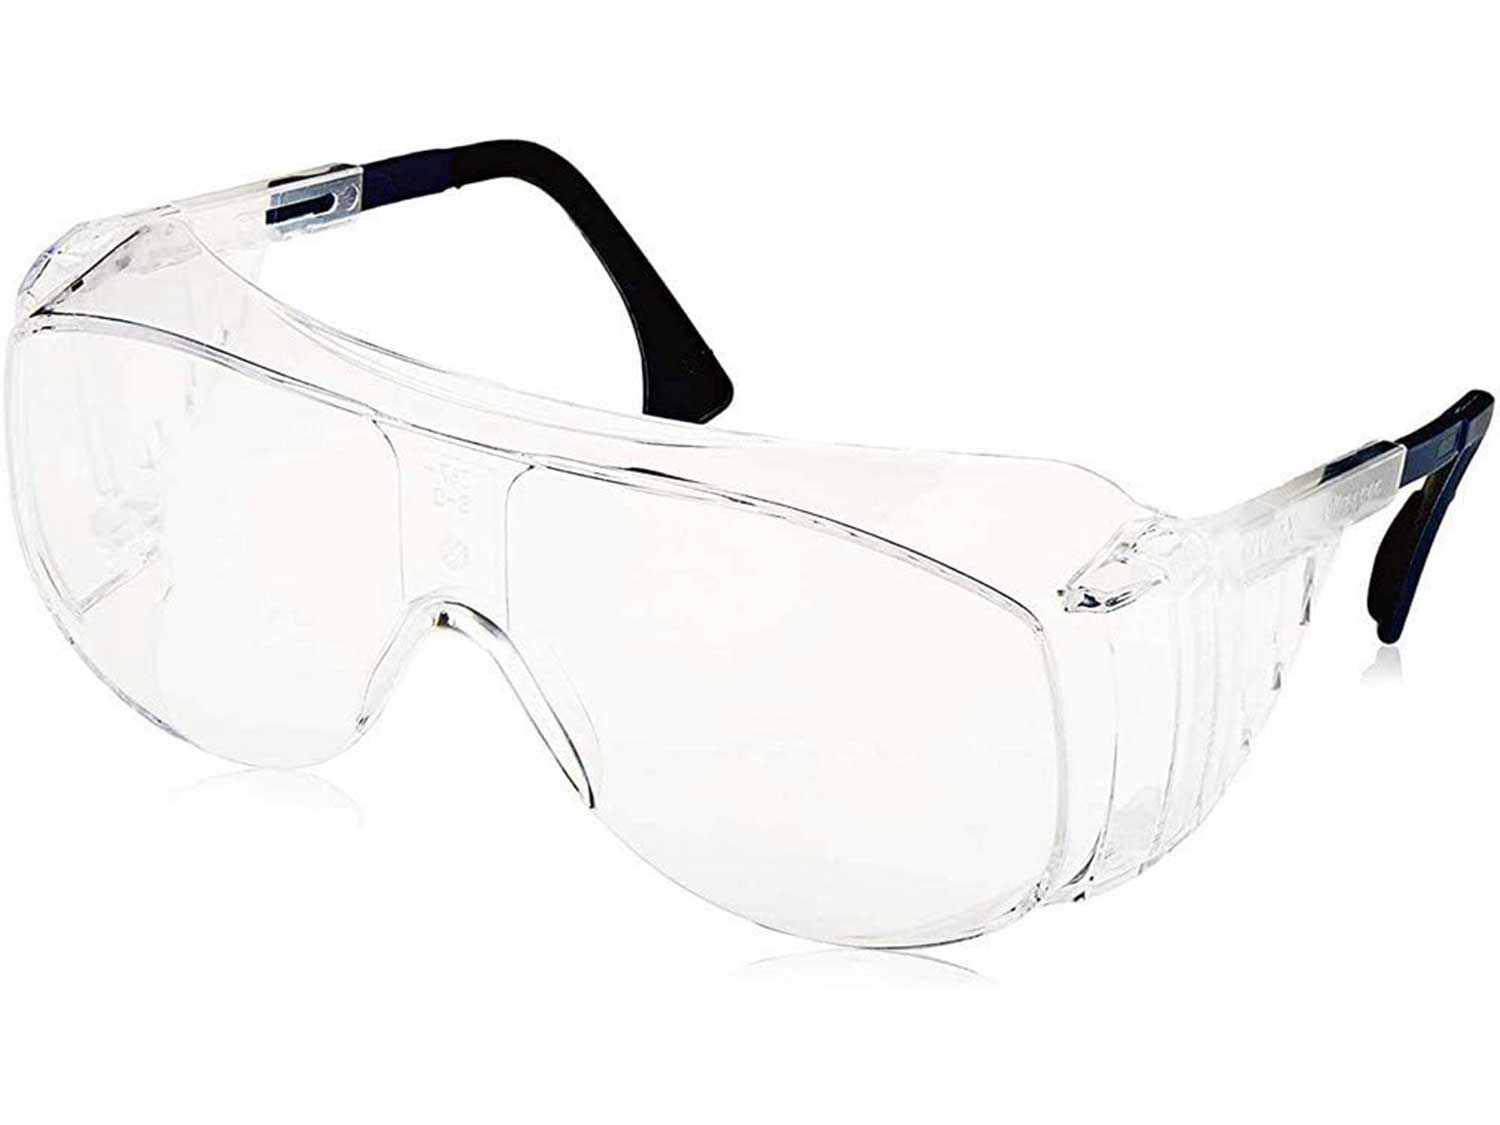 Uvex Ultra-Spec 2001 OTG (Over-the Glass) Visitor Specs Safety Glasses with Clear Ultra-Dura Anti-Scratch Lens